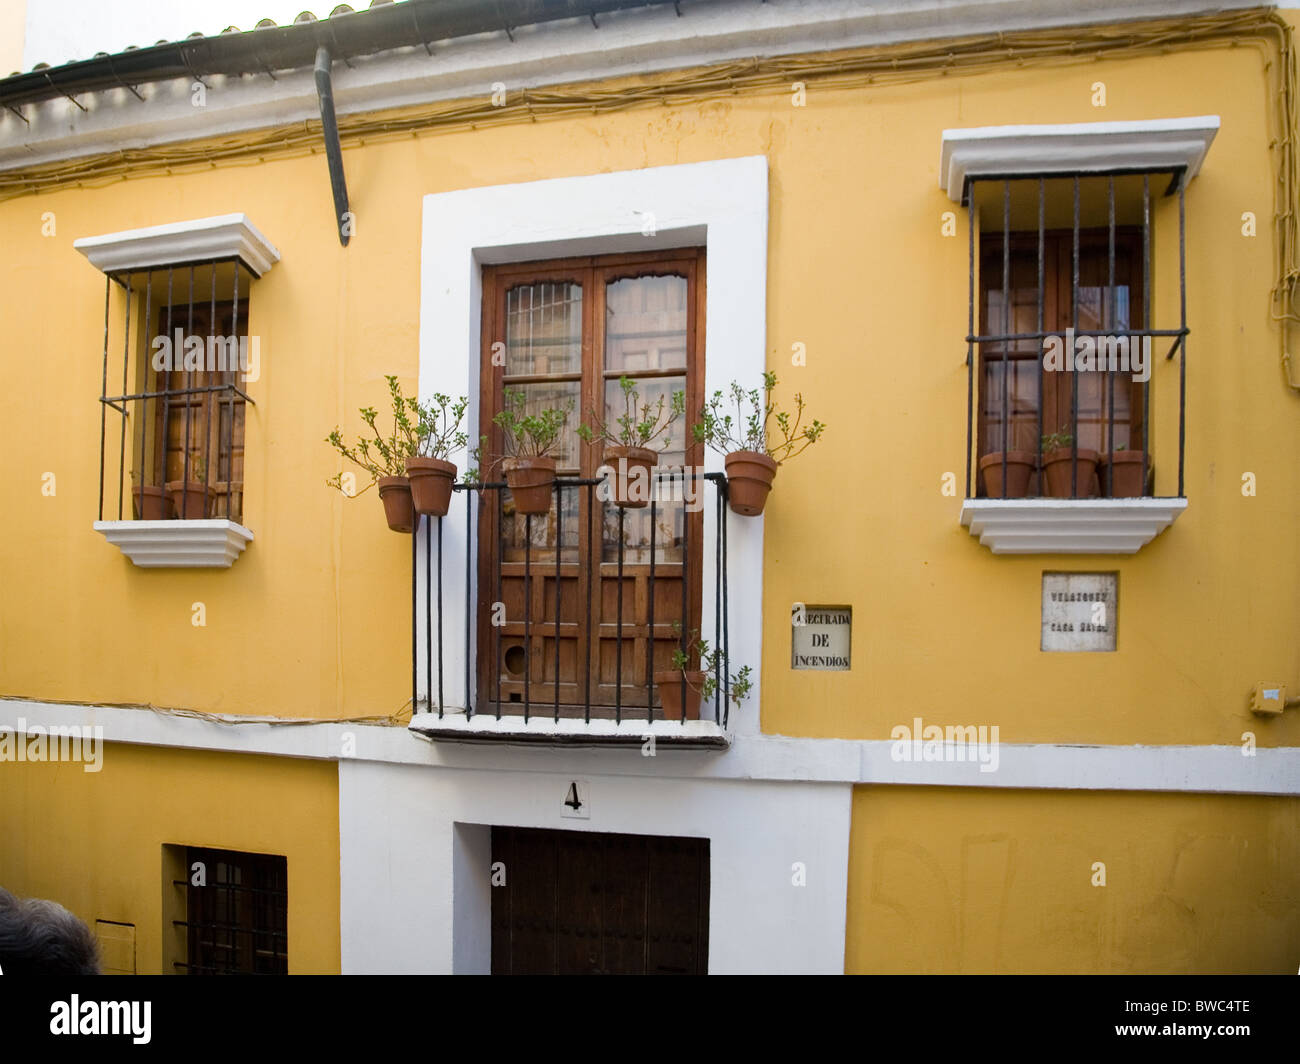 The house where Diego Velazquez was born in Seville, Spain, - June 6th 1599 - Stock Image